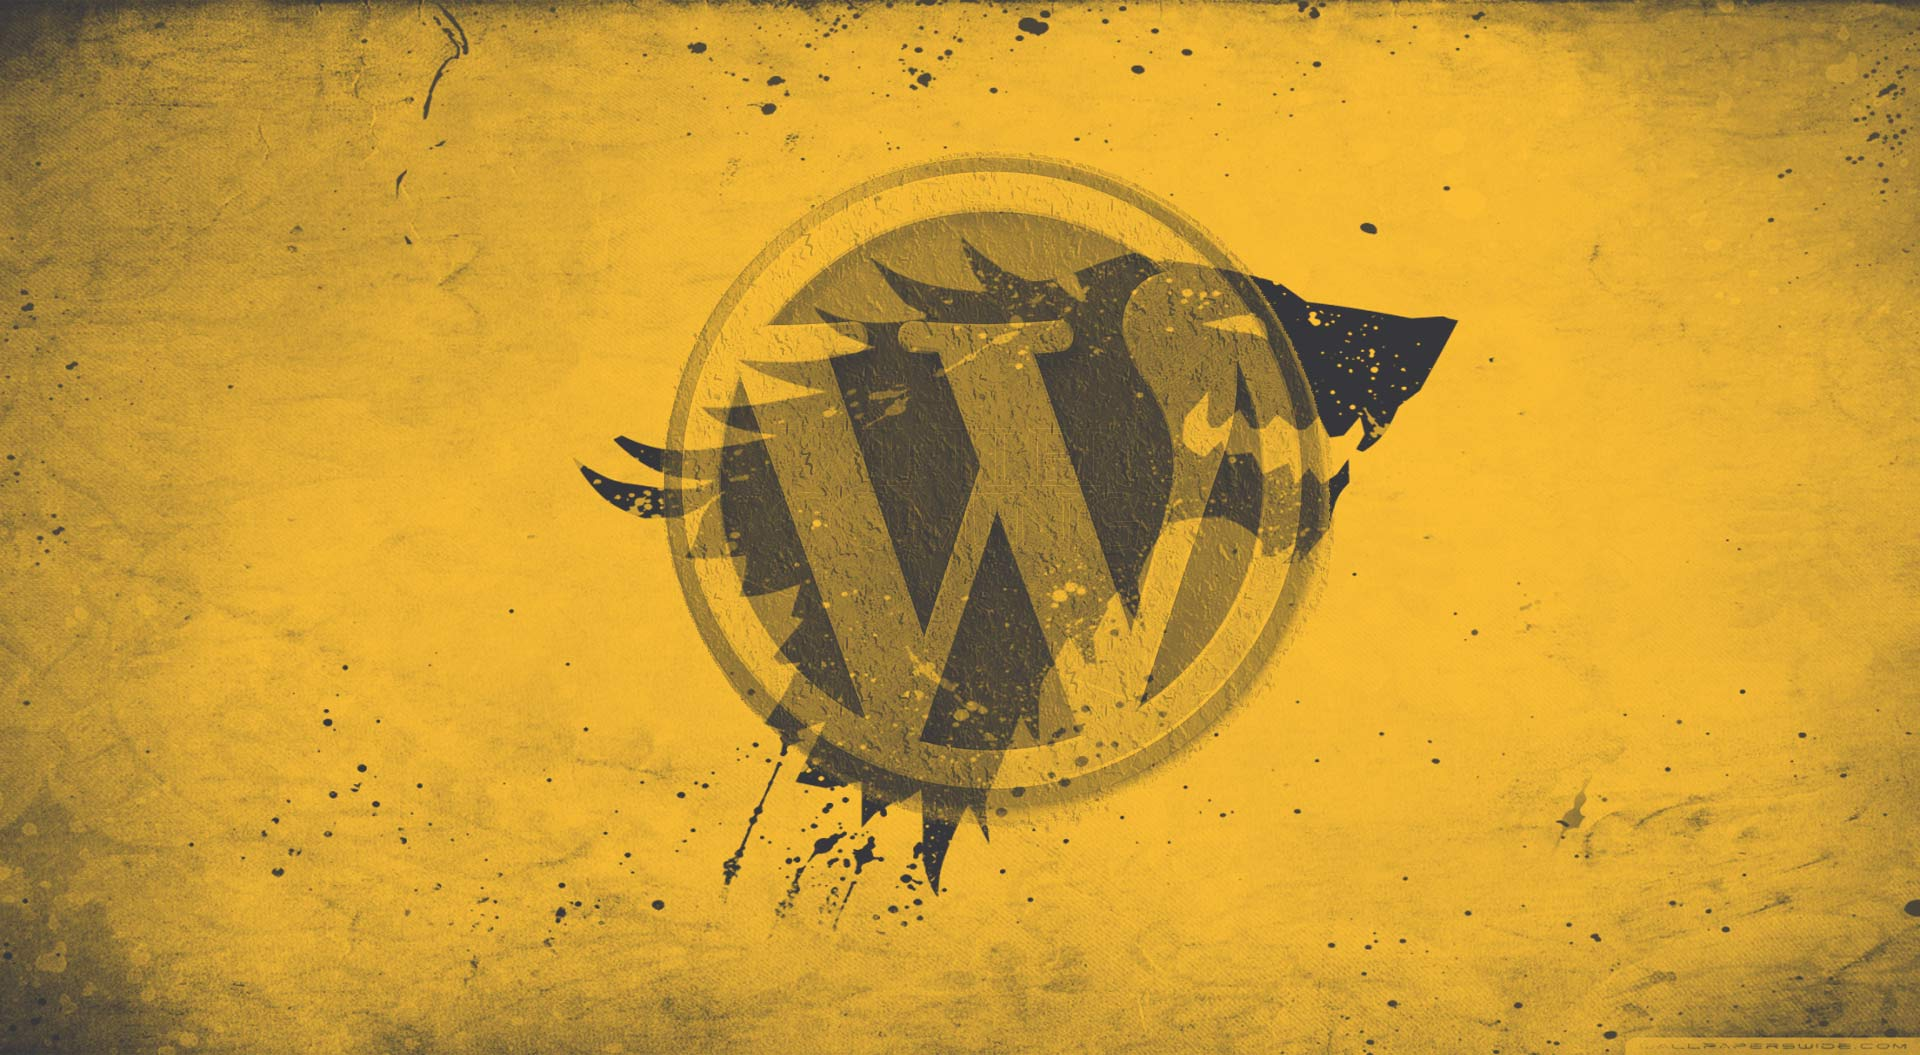 WordPress 4.8 is coming